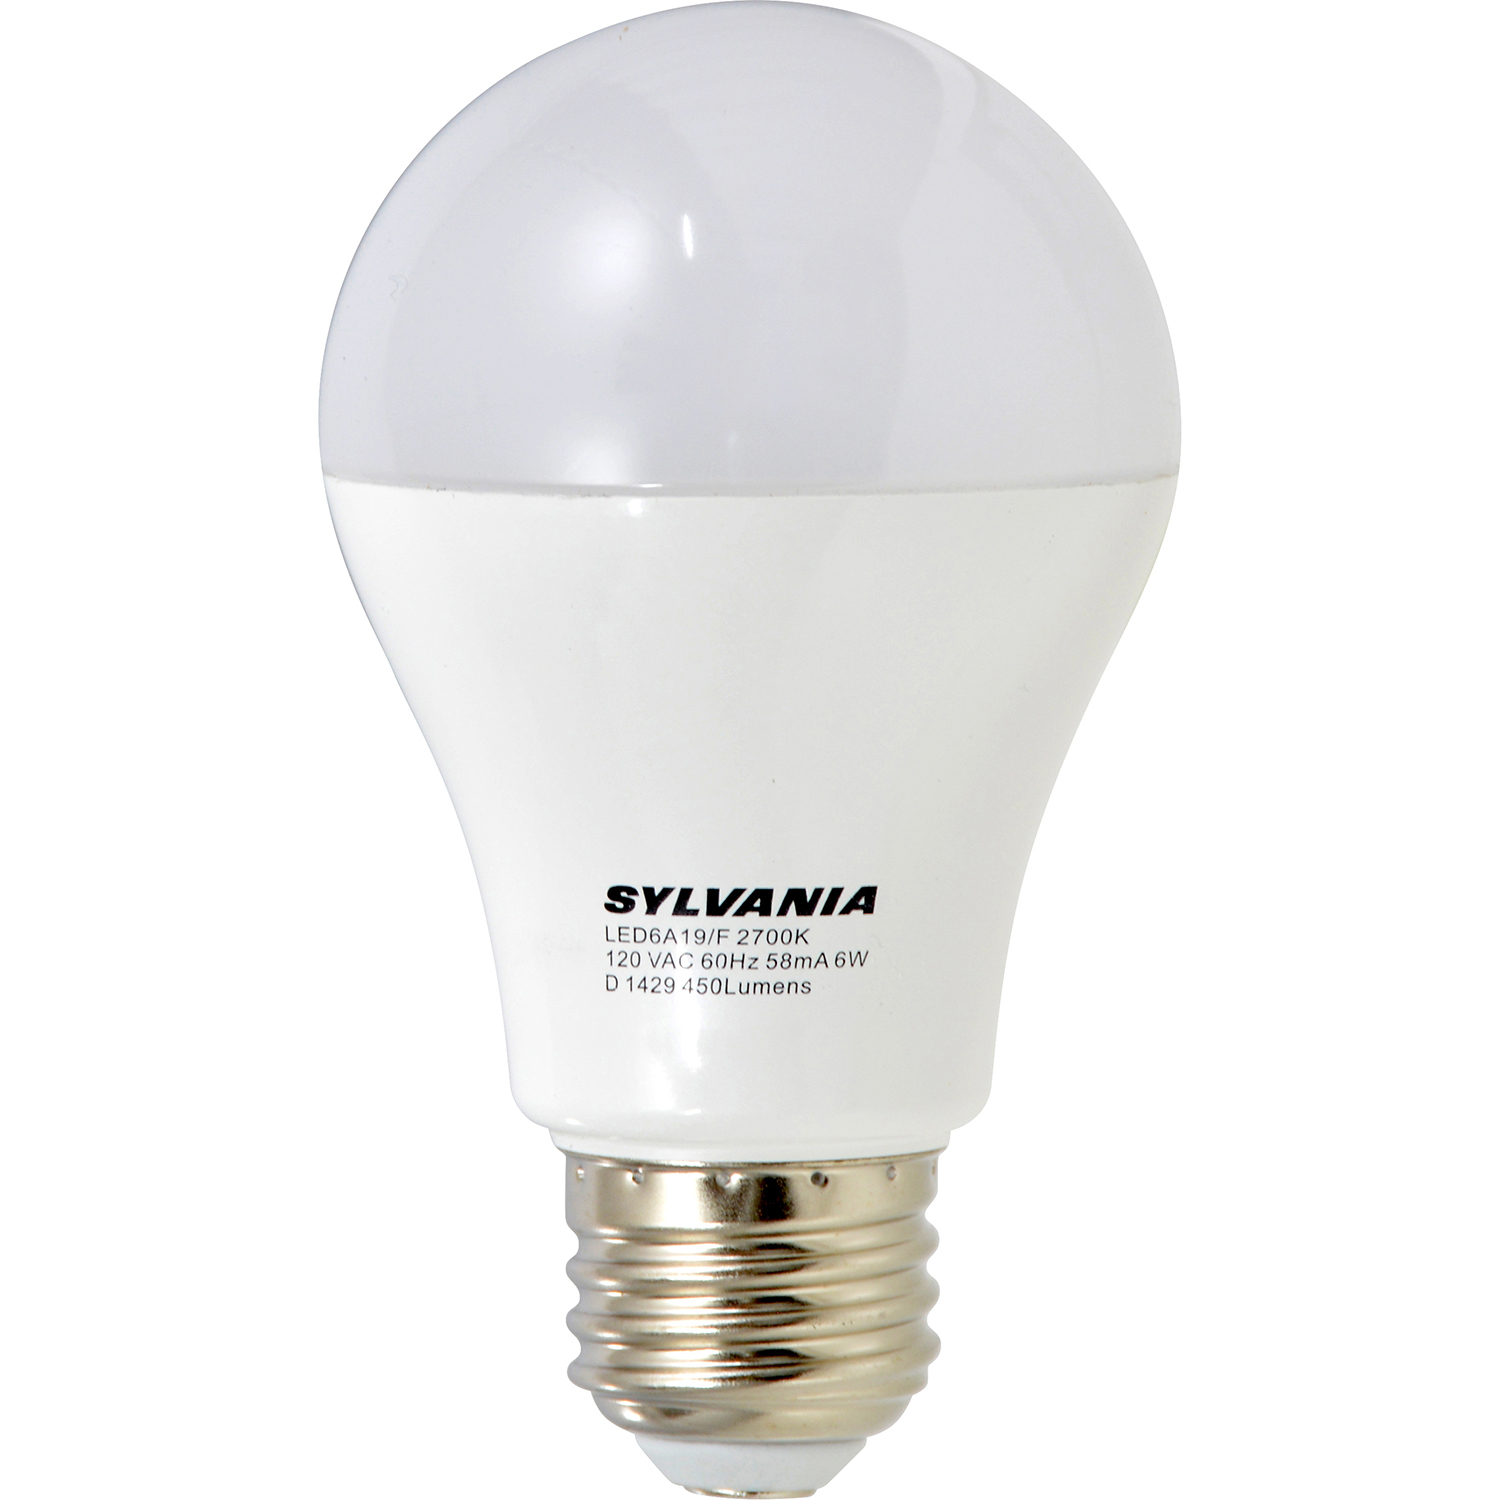 Sylvania a19 40w e26 non dimmable soft white led light bulbs 12 bulbs 73642 Sylvania bulbs